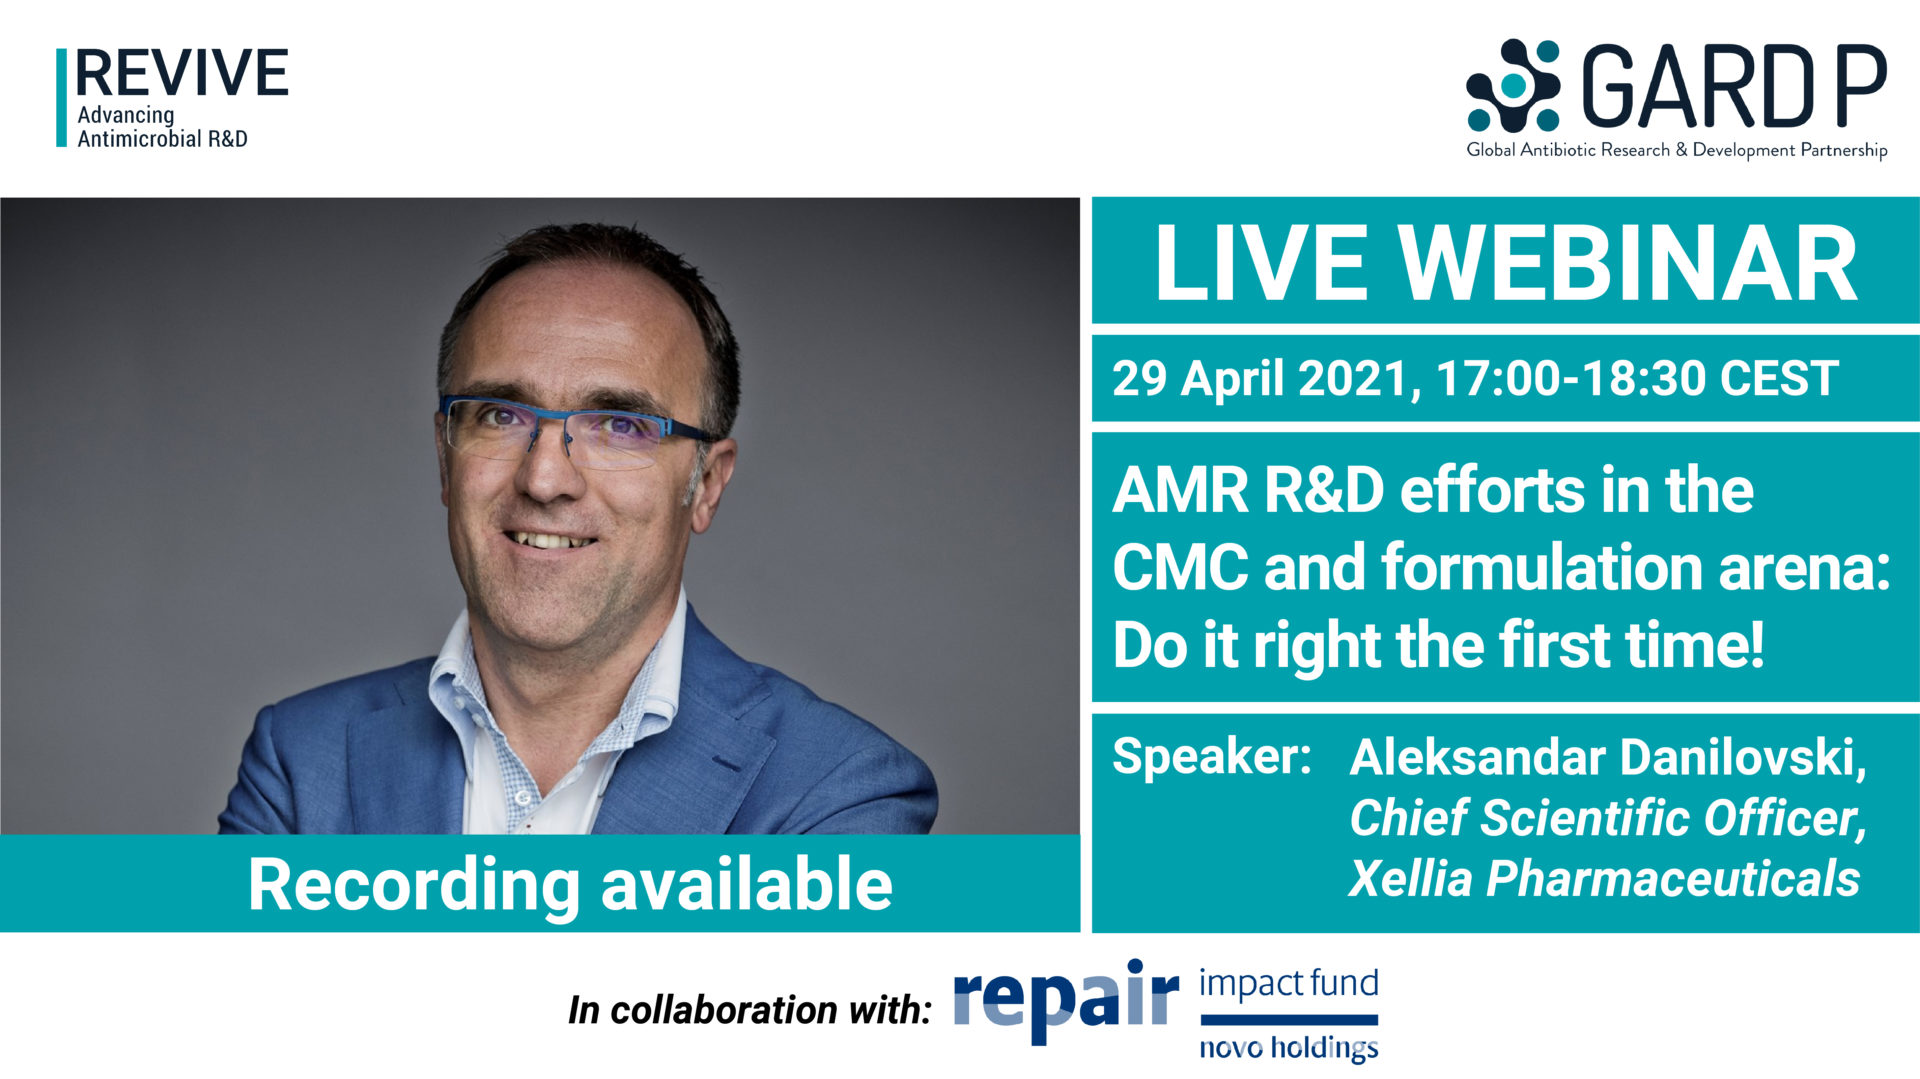 AMR R&D efforts in the CMC and formulation arena: Do it right the first time!